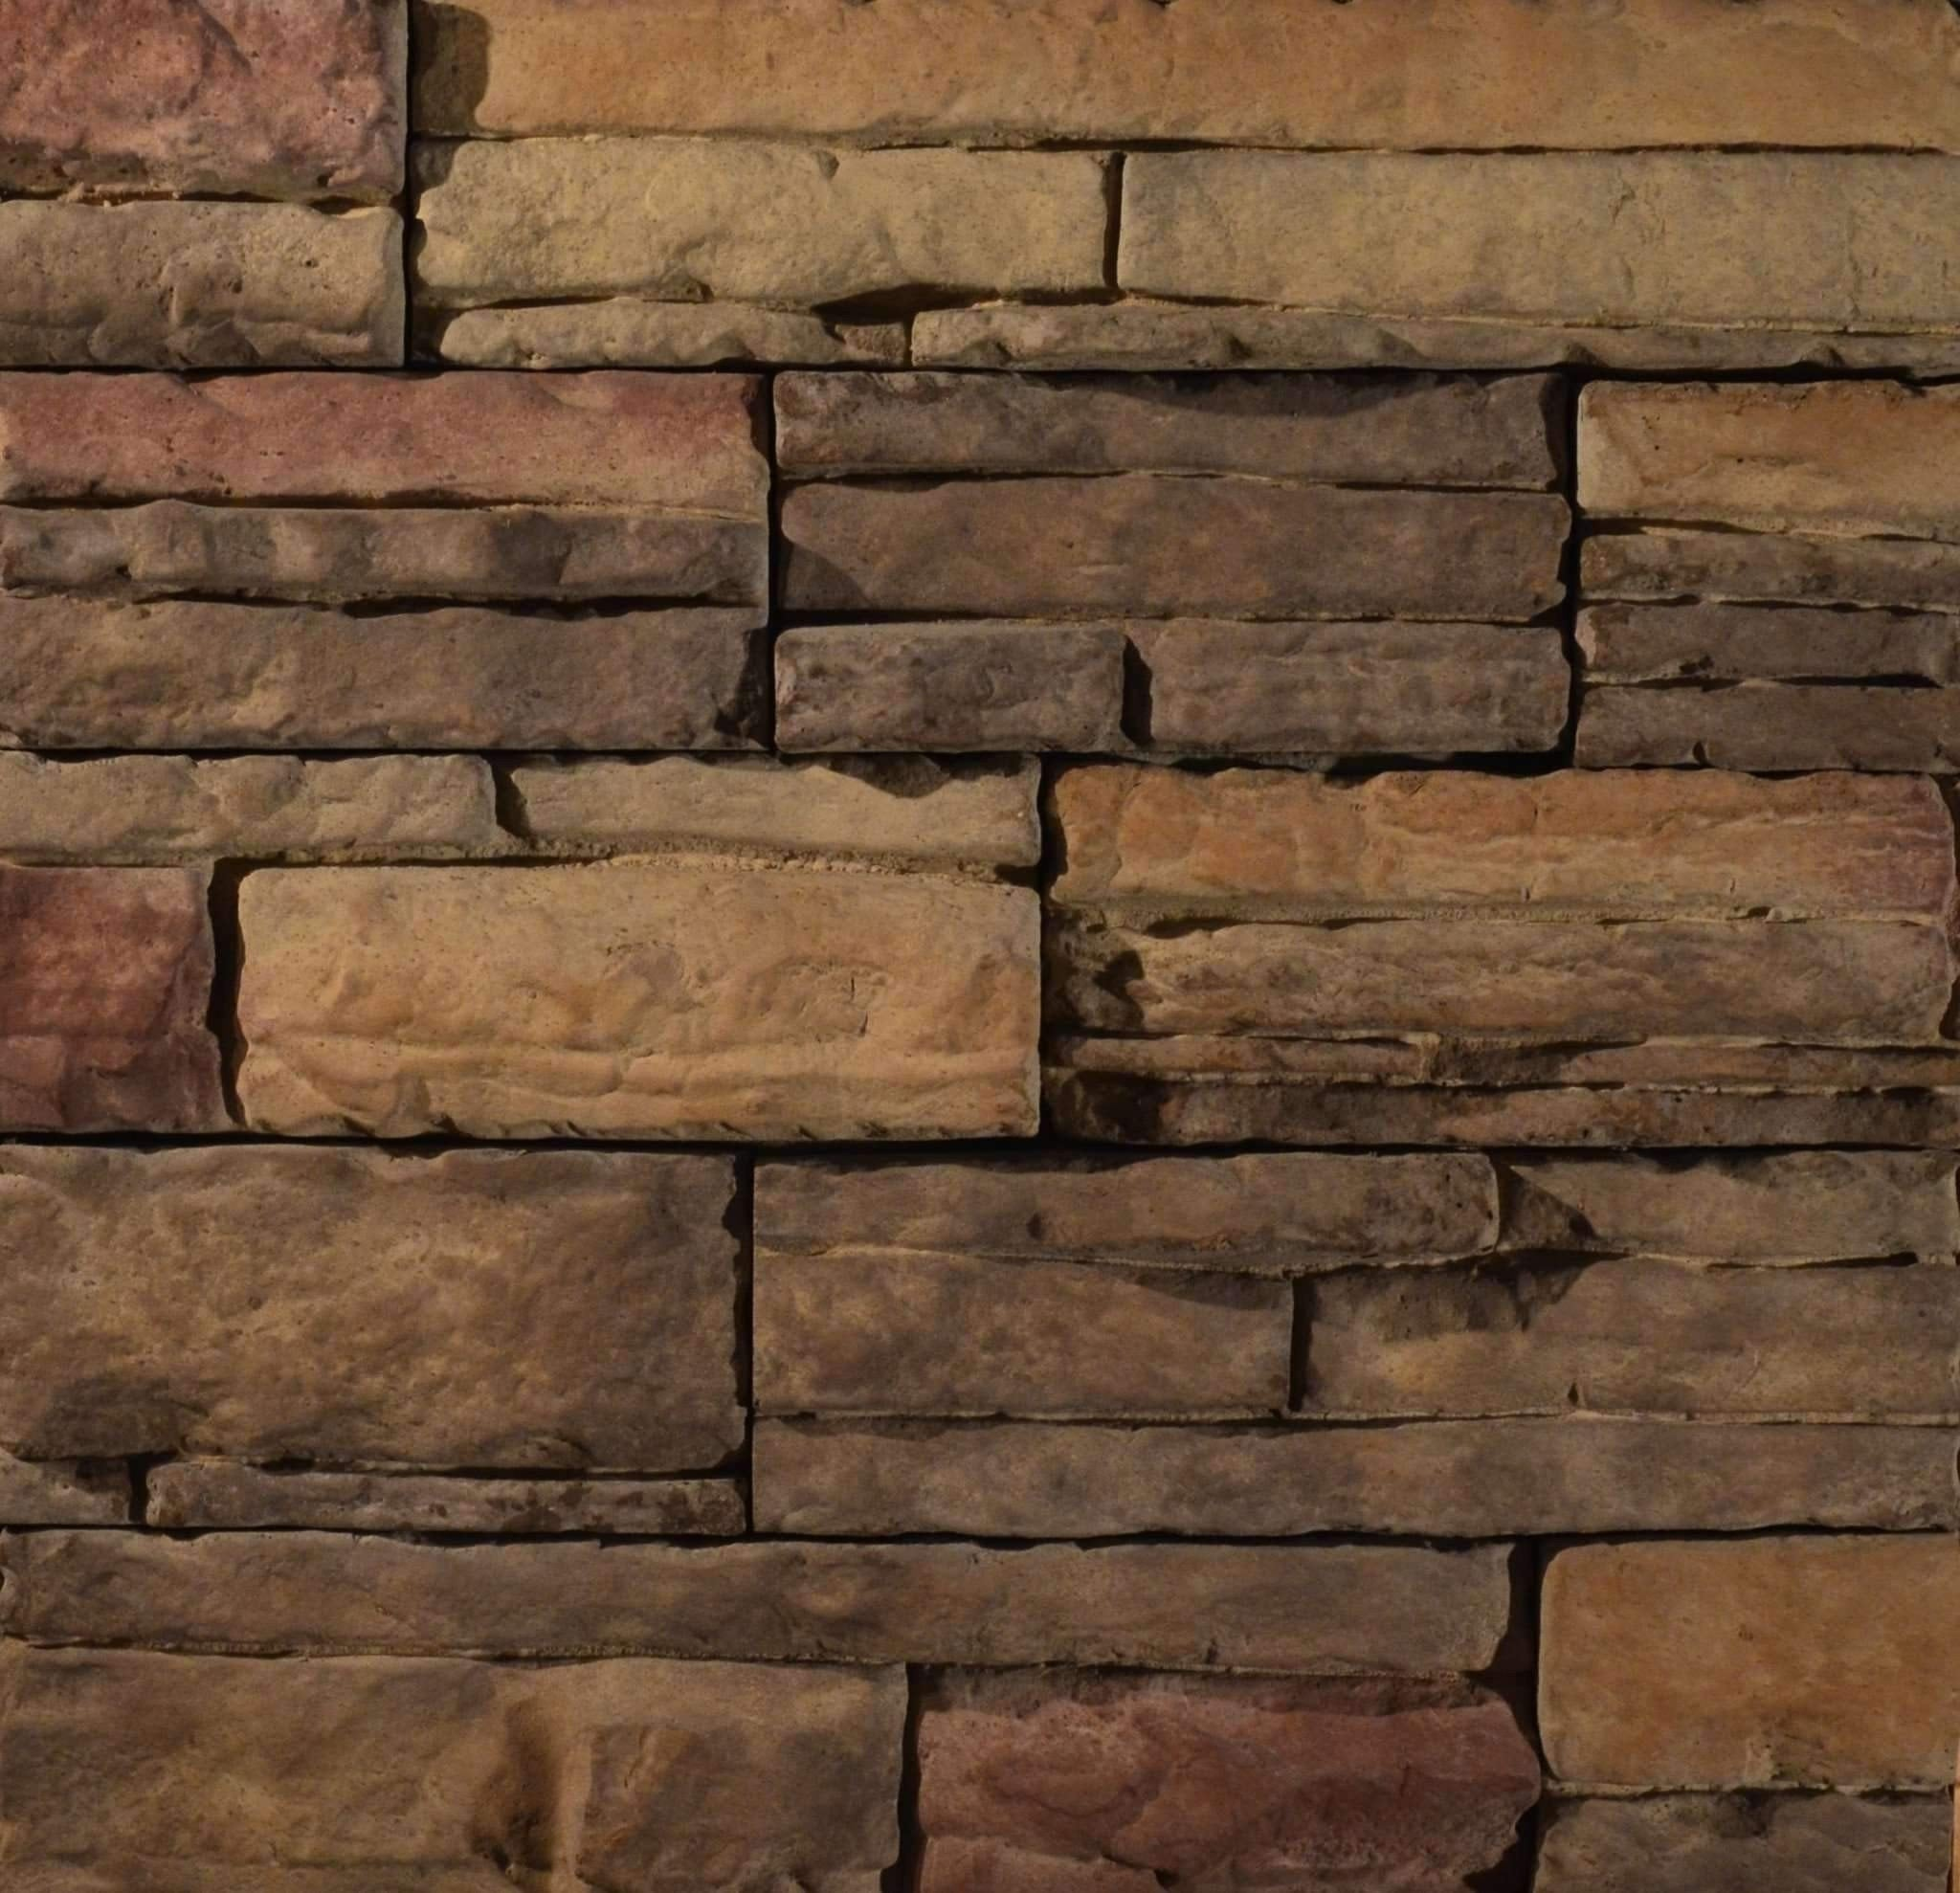 Okoboji - Quick Fit Ledgestone cheap stone veneer clearance - Discount Stones wholesale stone veneer, cheap brick veneer, cultured stone for sale